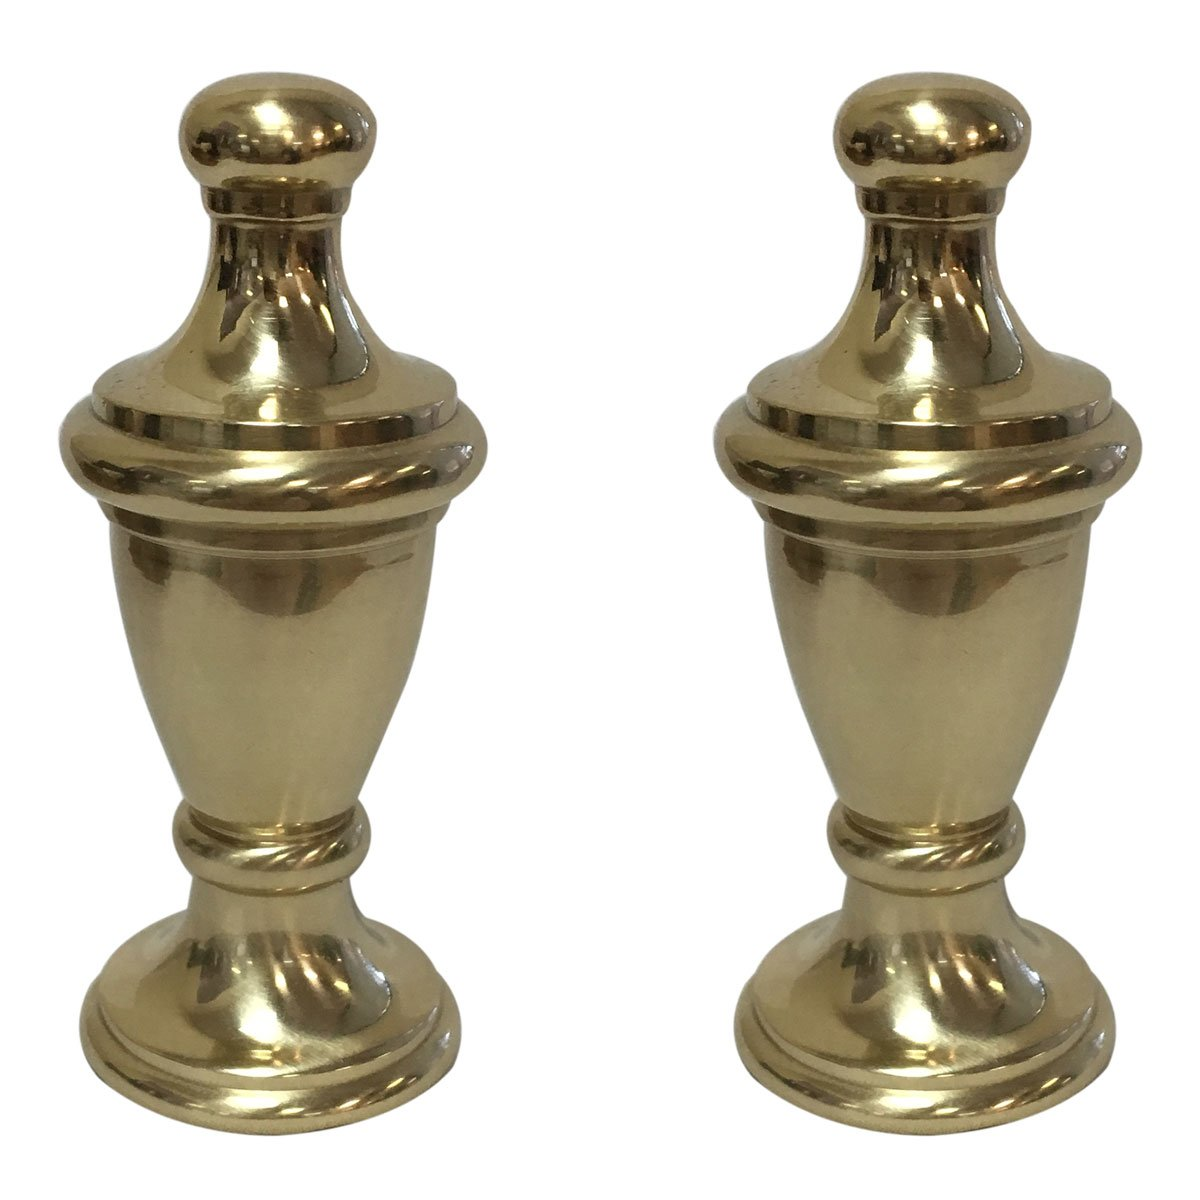 Royal Designs Simple Vase Design Lamp Finial with Polished Brass Finish - Set of 2